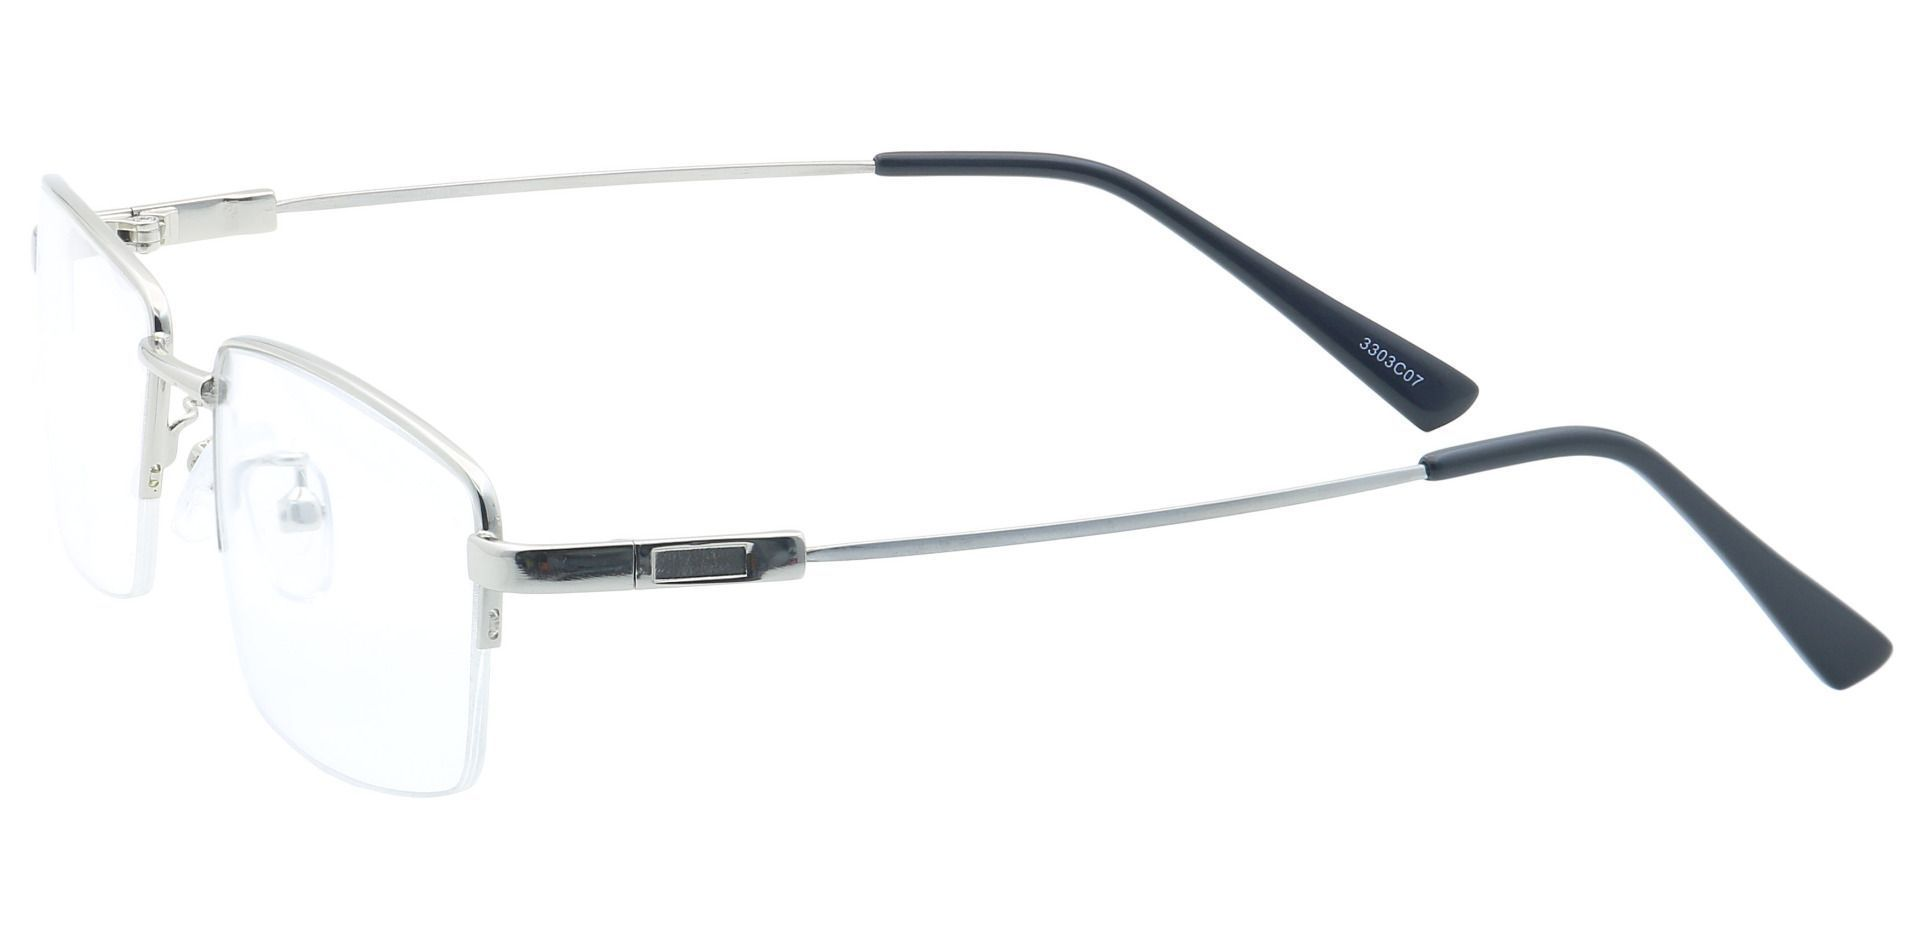 Zander Rectangle Lined Bifocal Glasses - Silver